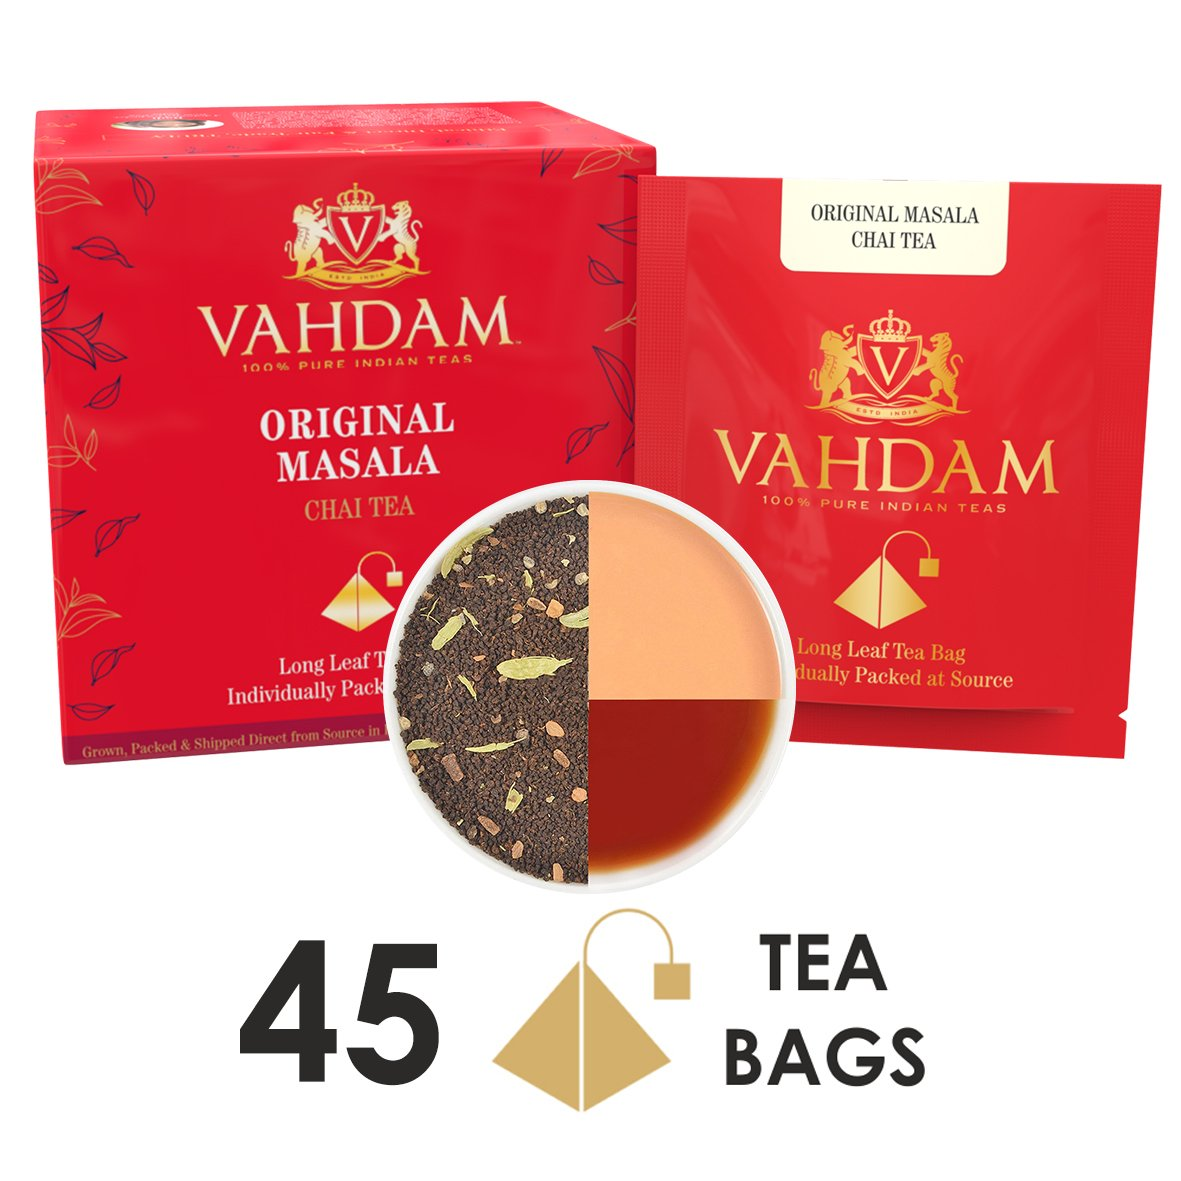 India's Original Masala Chai Tea Bags, 30 TEA BAGS, 100% NATURAL SPICES & NO ADDED FLAVOURING - Blended & Packed in India - Black Tea, Cardamom, Cinnamon, Black Pepper & Clove